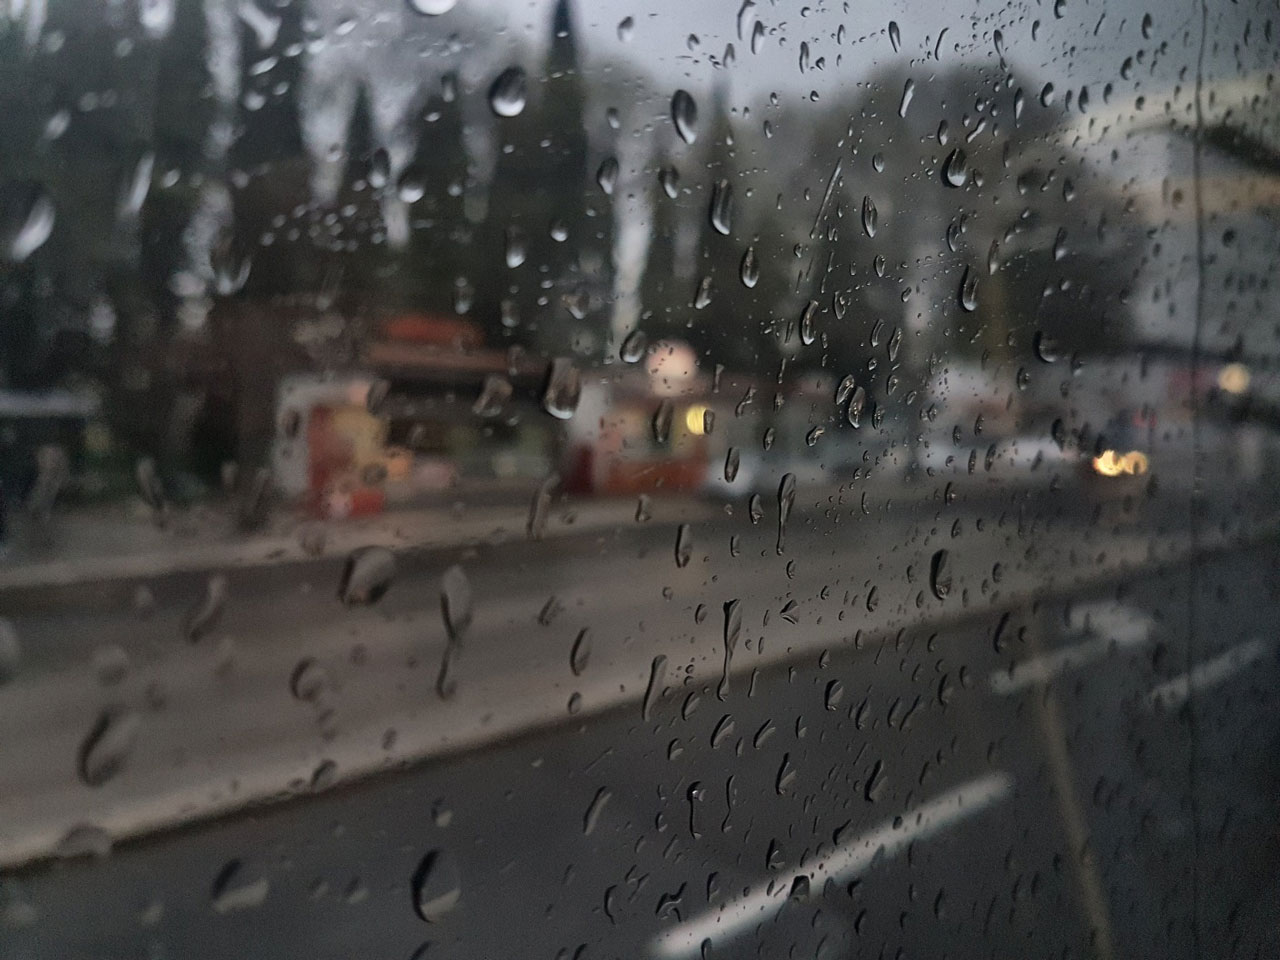 A reflective window, rainy day